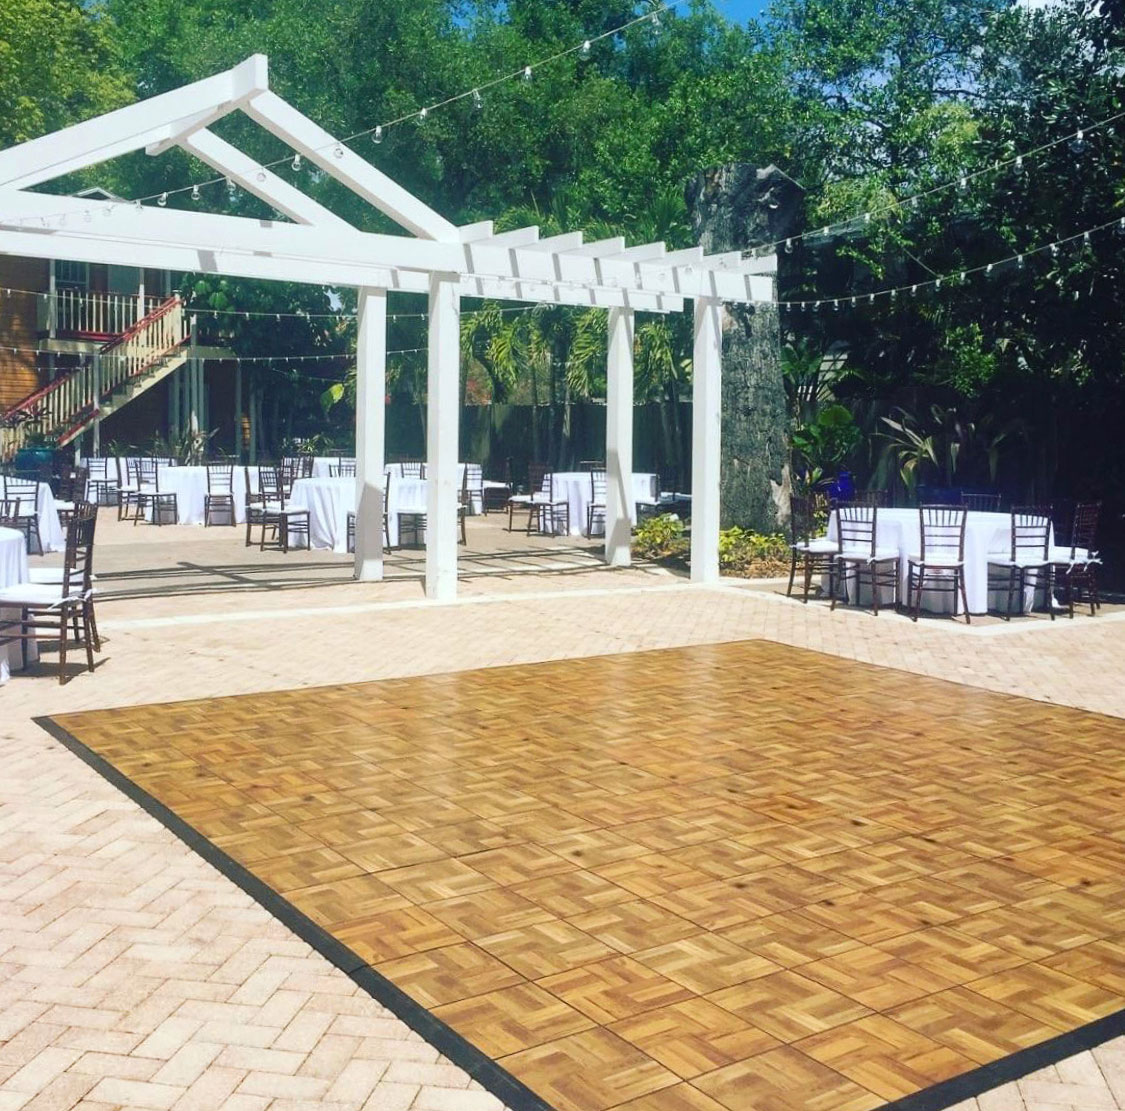 An oak-style dance floor is ready to welcome some dancing.